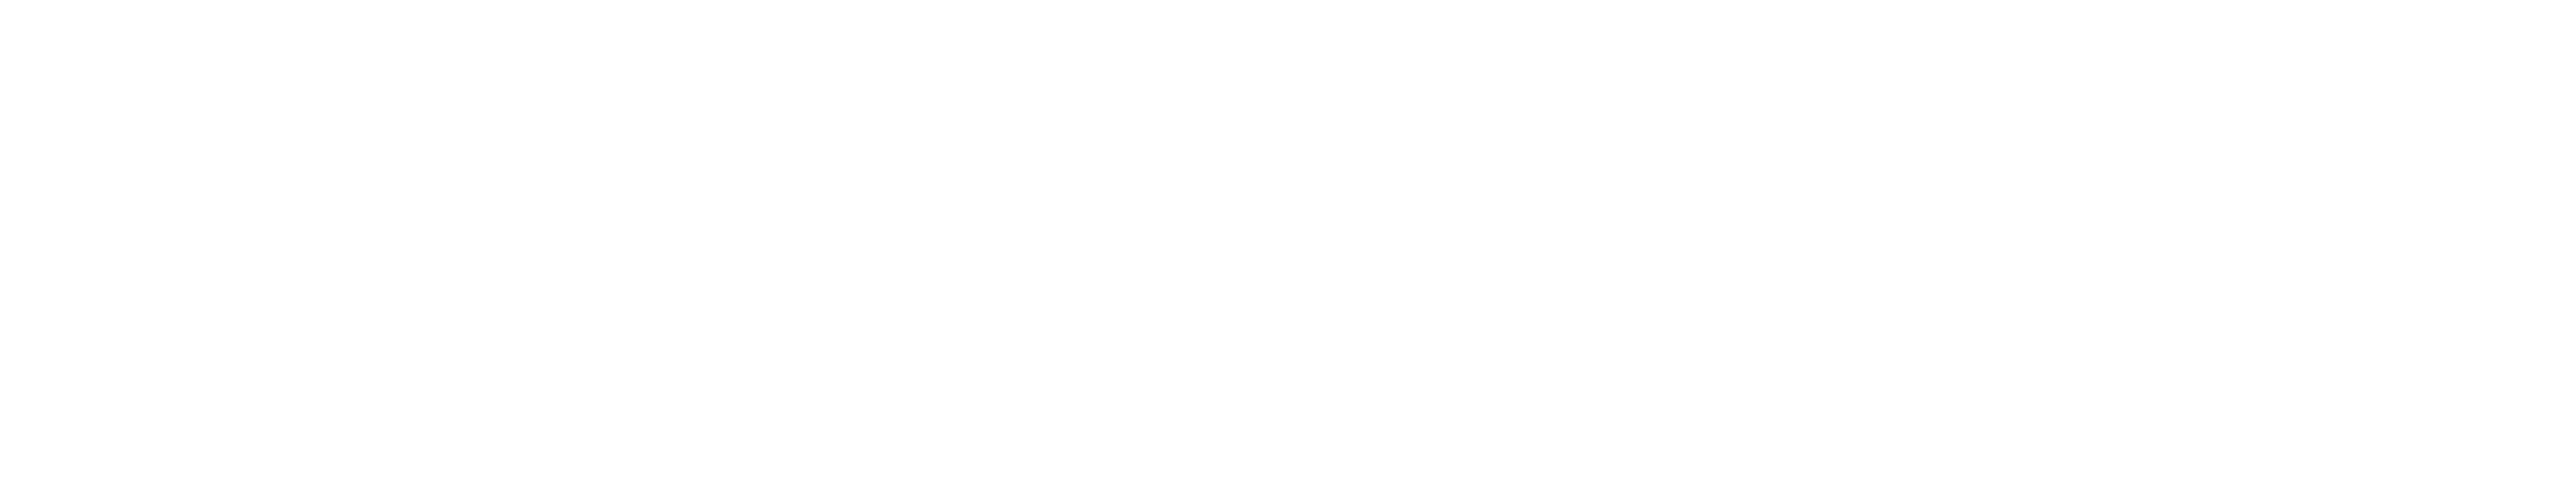 Halo Salon & Spa